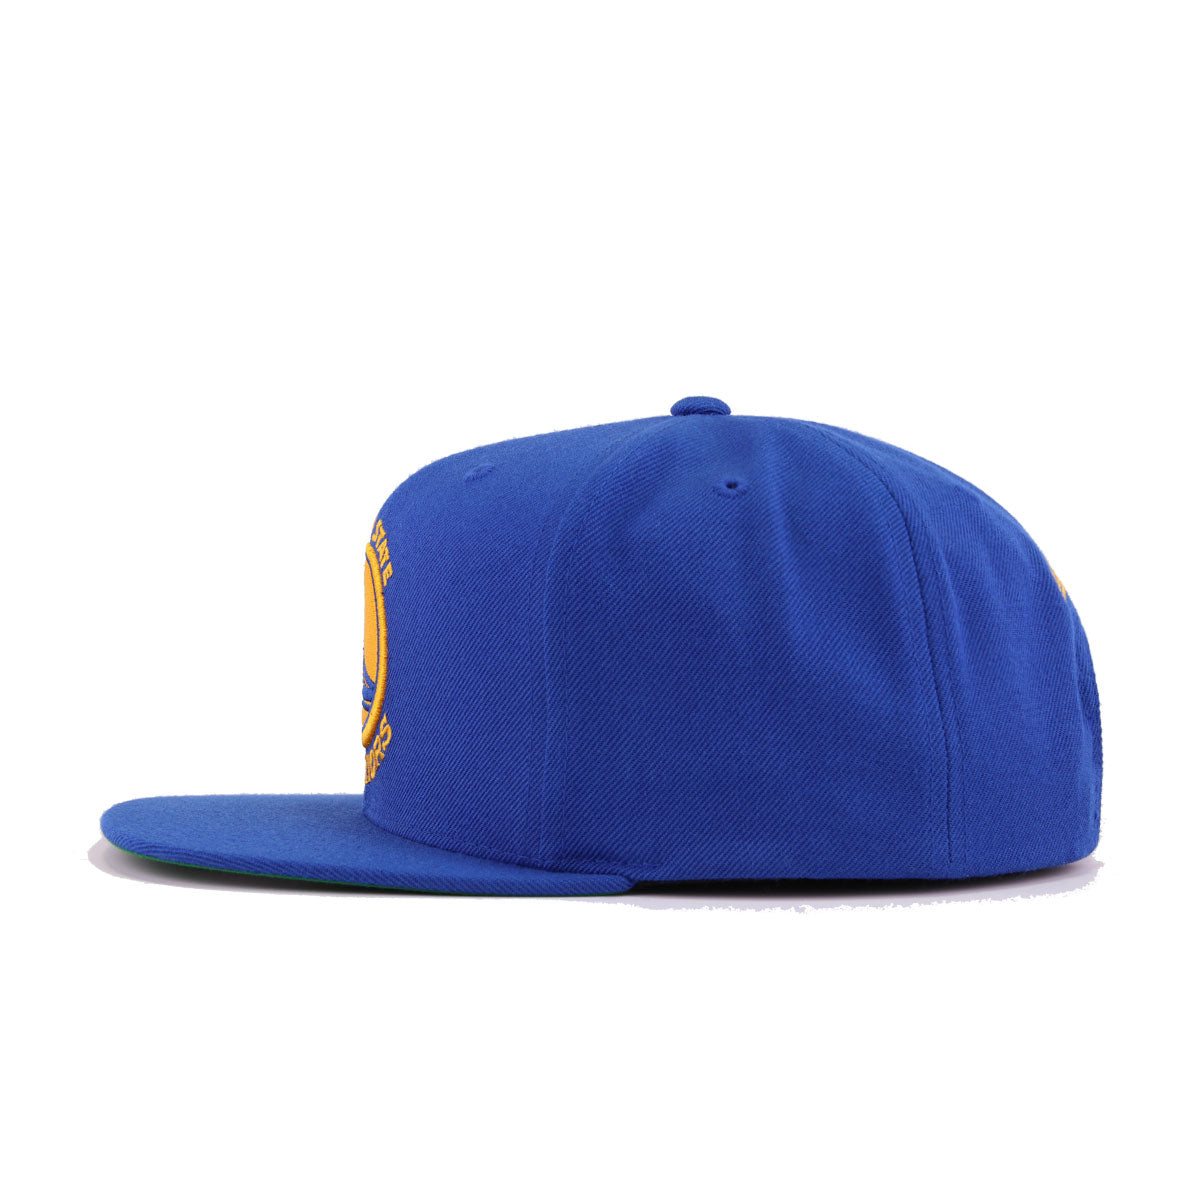 Golden State Warriors Light Royal Blue Mitchell and Ness Snapback